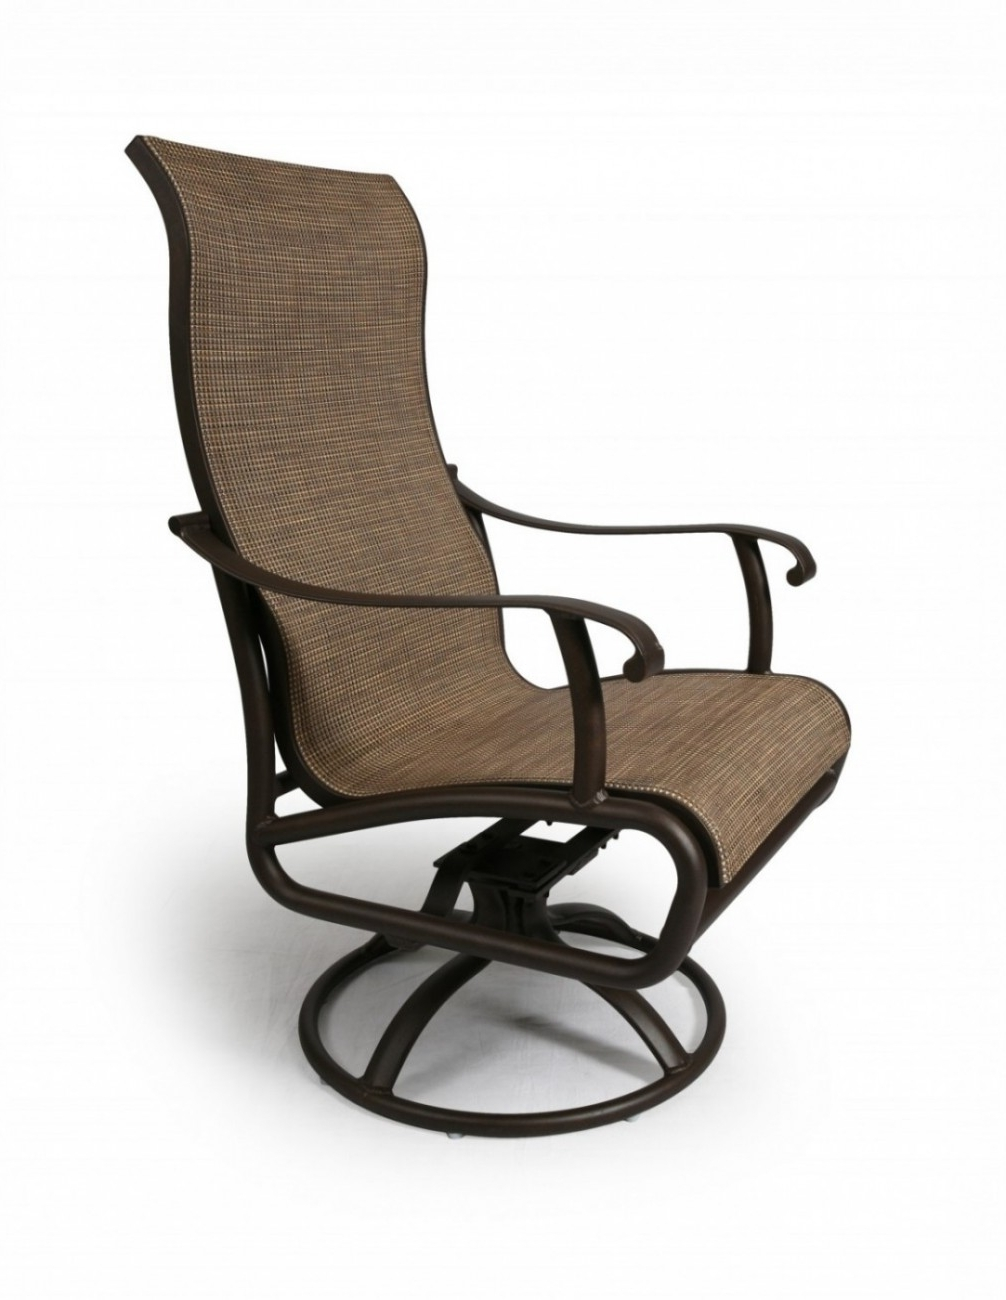 Patio Sling Rocking Chairs Throughout Most Up To Date Scarsdale Sling Swivel Rocker (View 11 of 15)